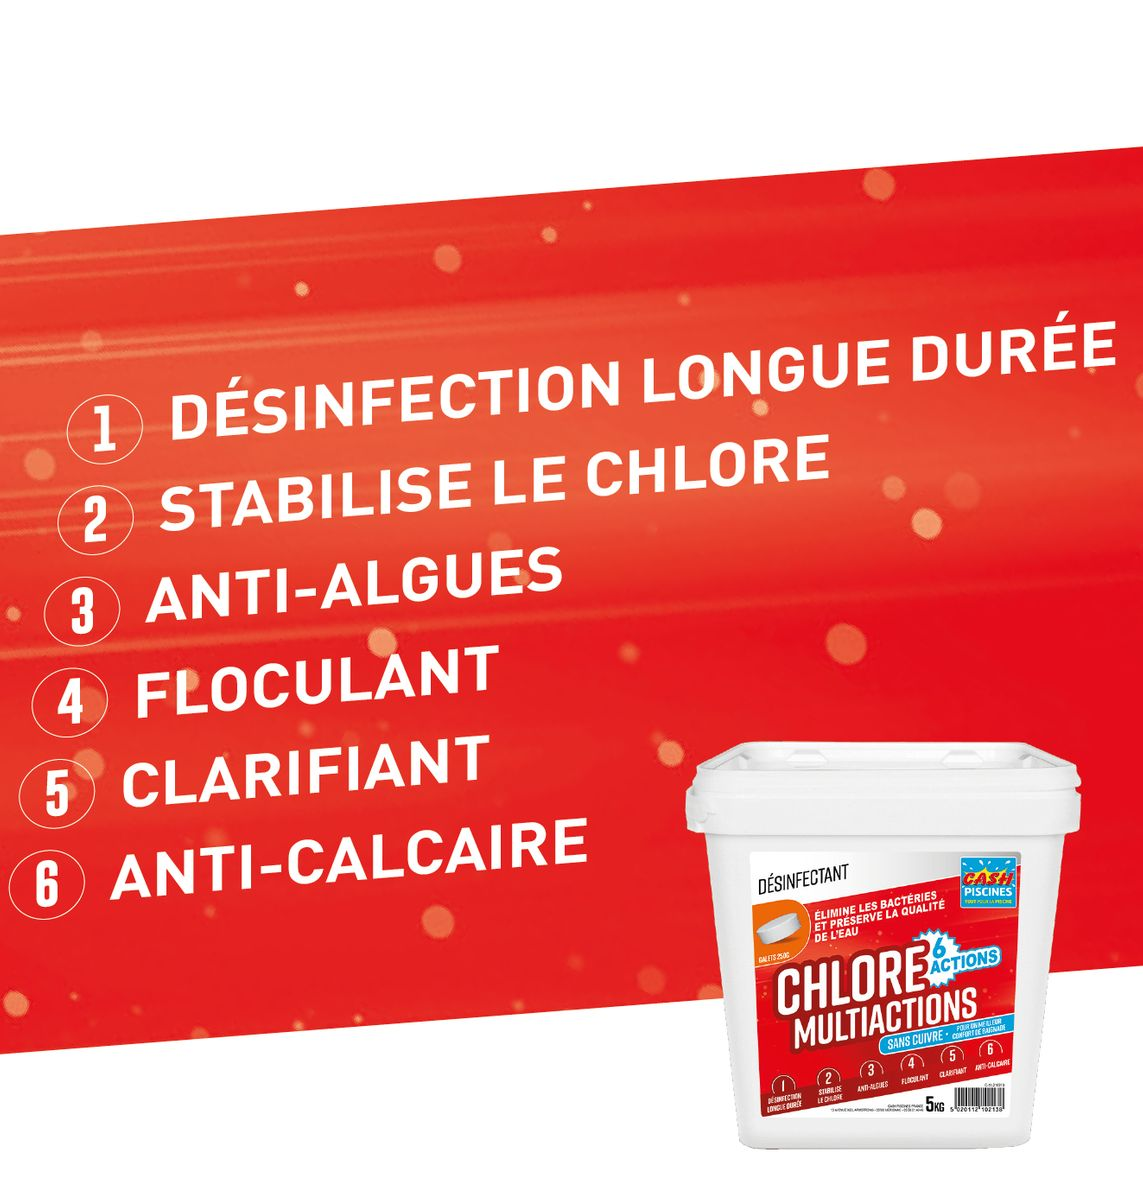 CHLORE MULTIACTIONS 5KG SANS CUIVRE - 6 ACTIONS